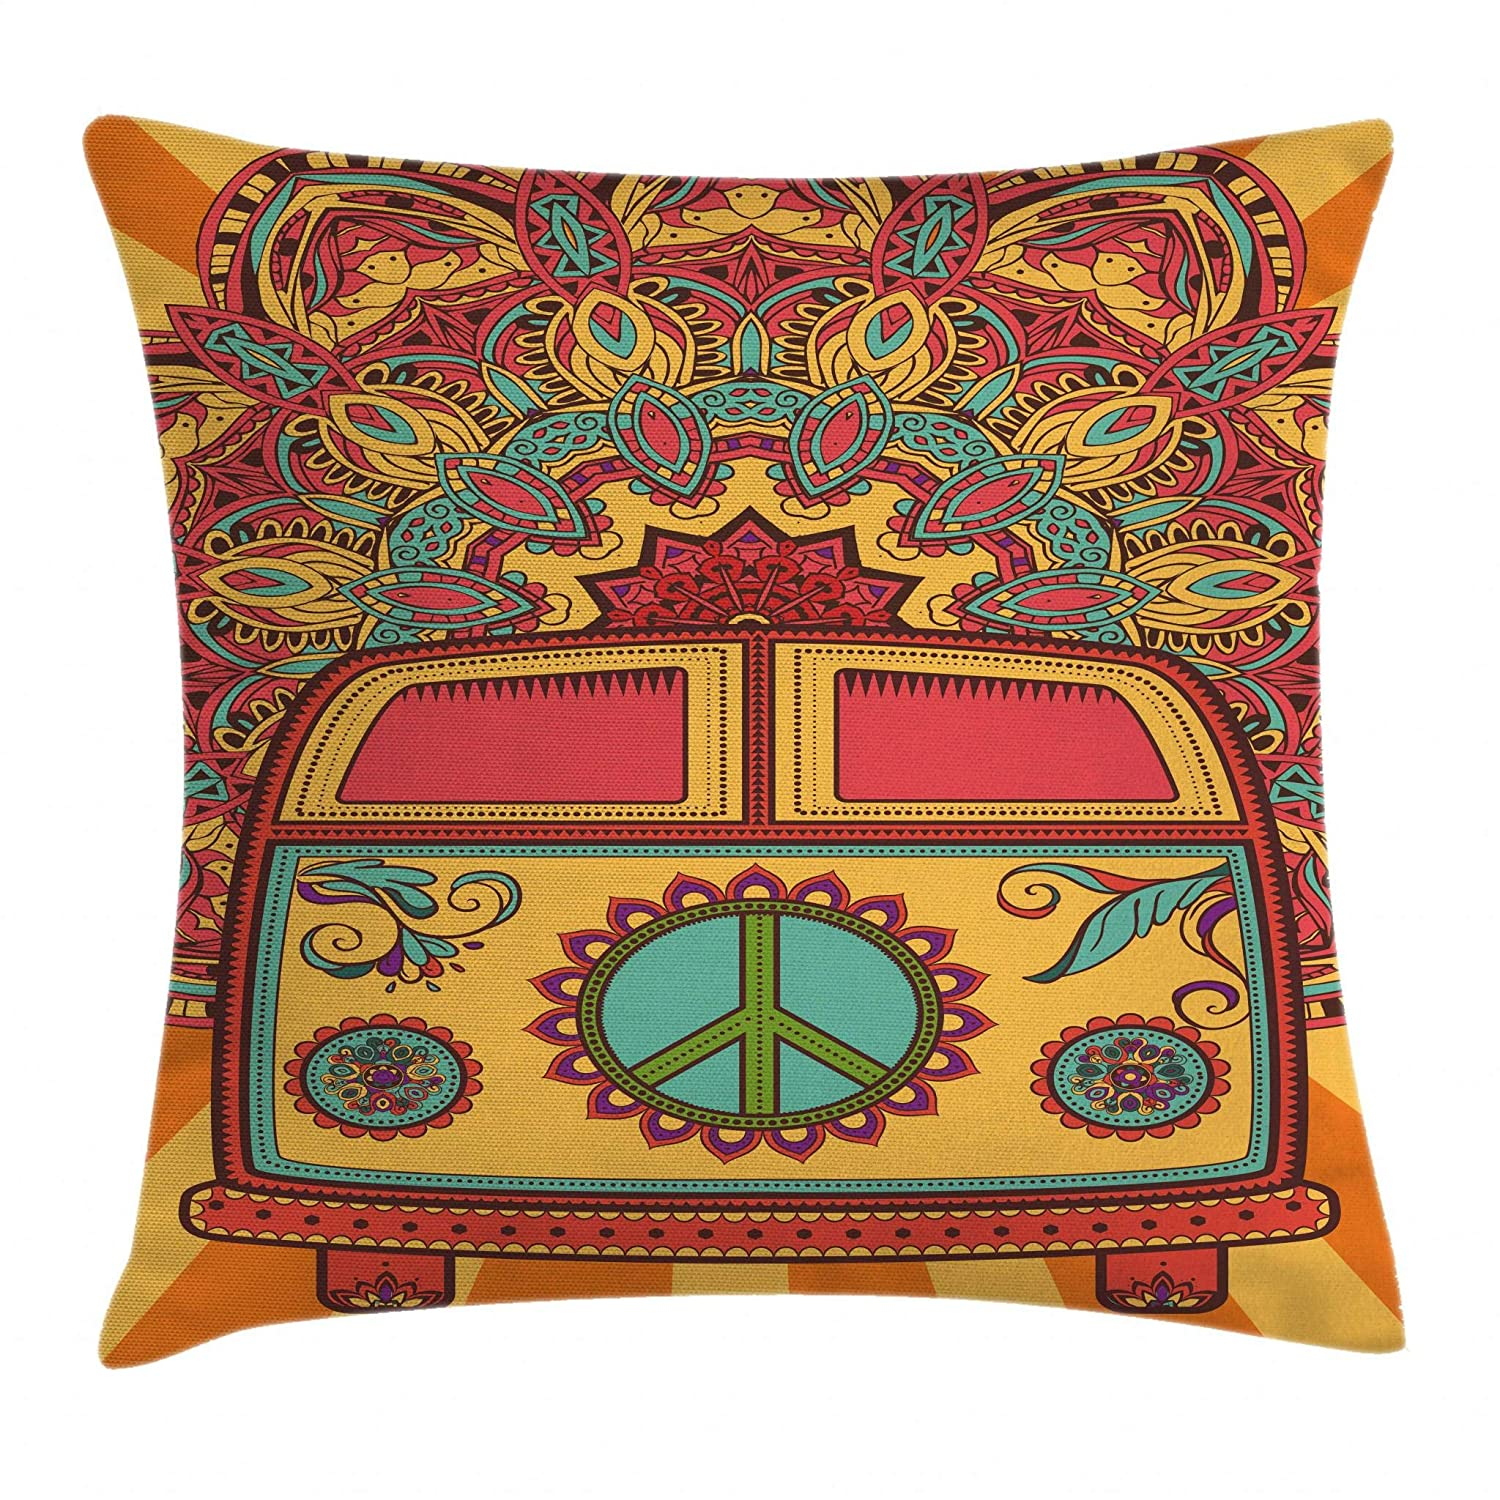 """Ambesonne 70s Party Throw Pillow Cushion Cover, Hippie Vintage Mini Van Ornamental Backdrop with Peace Sign Artwork, Decorative Square Accent Pillow Case, 16"""" X 16"""", Coral Orange"""